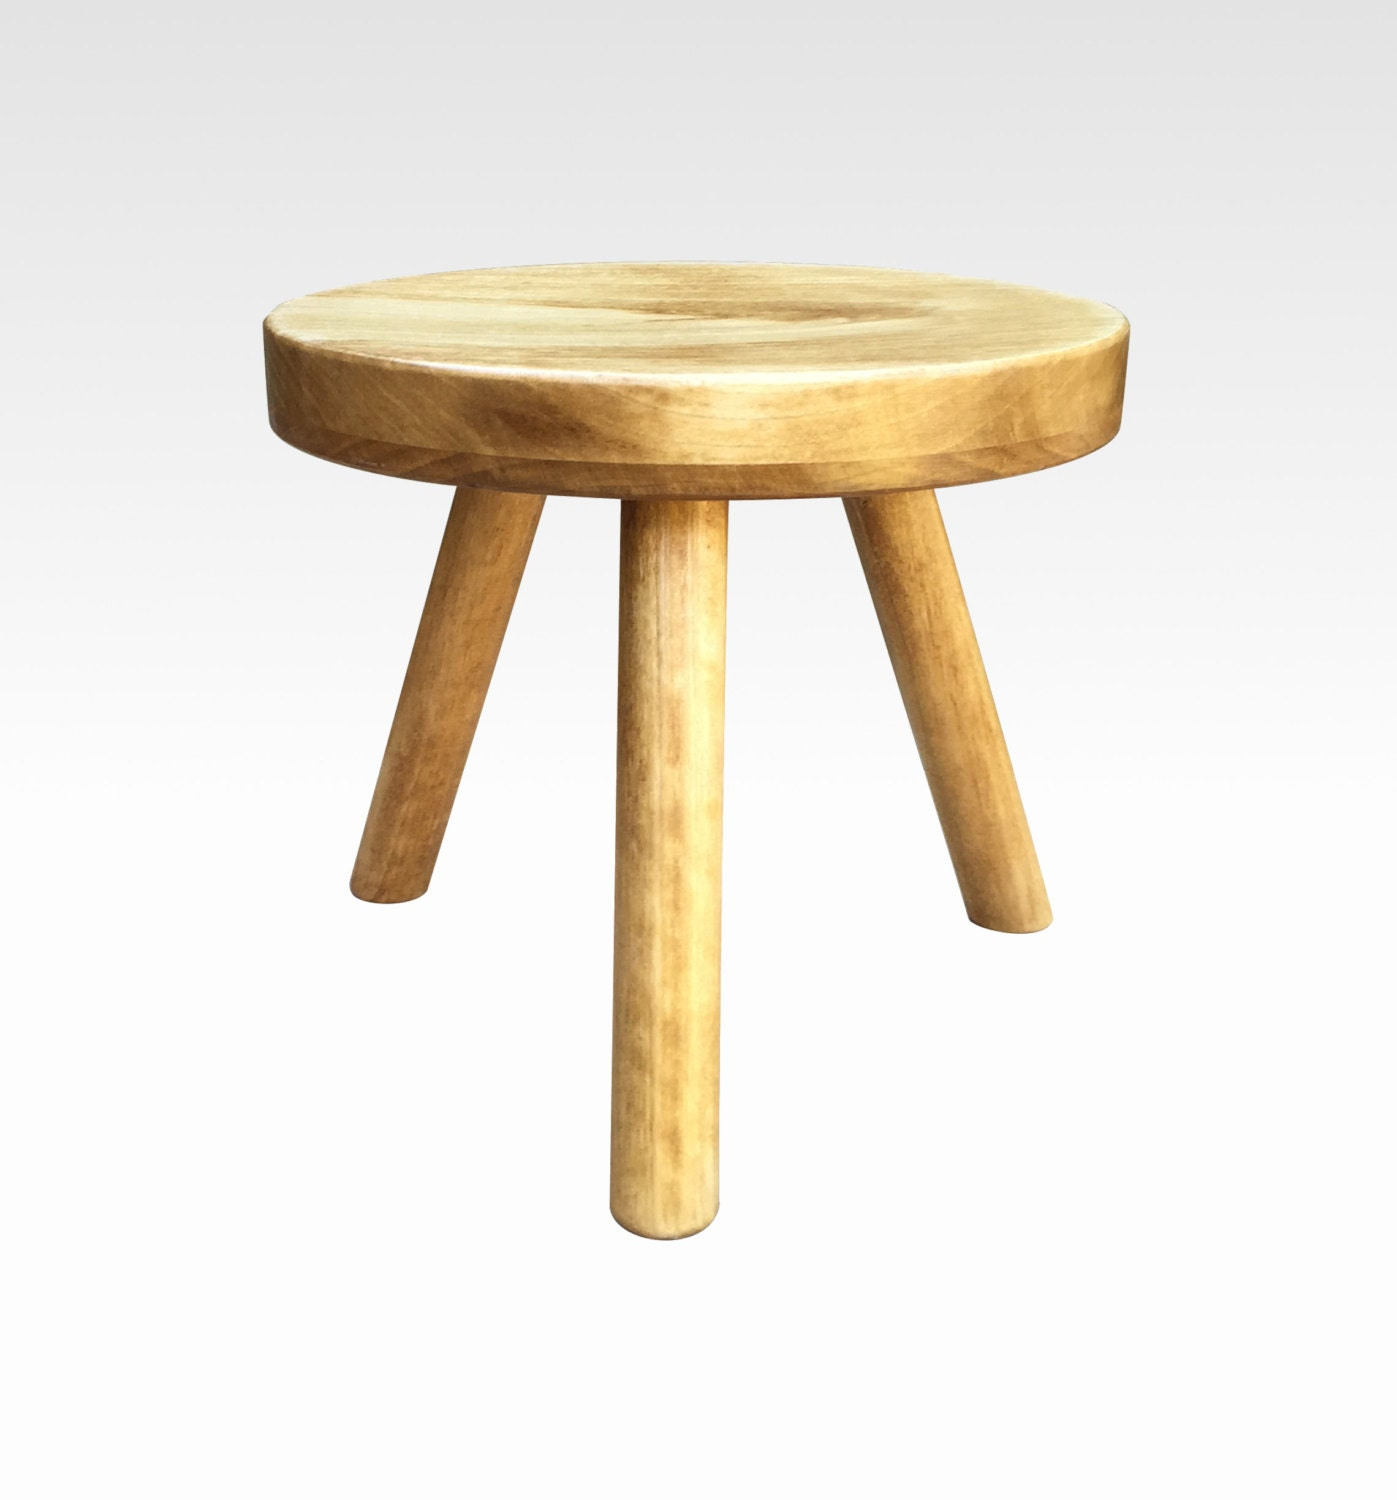 Small Wood Three Legged Stool Modern Plant Stand In Honey